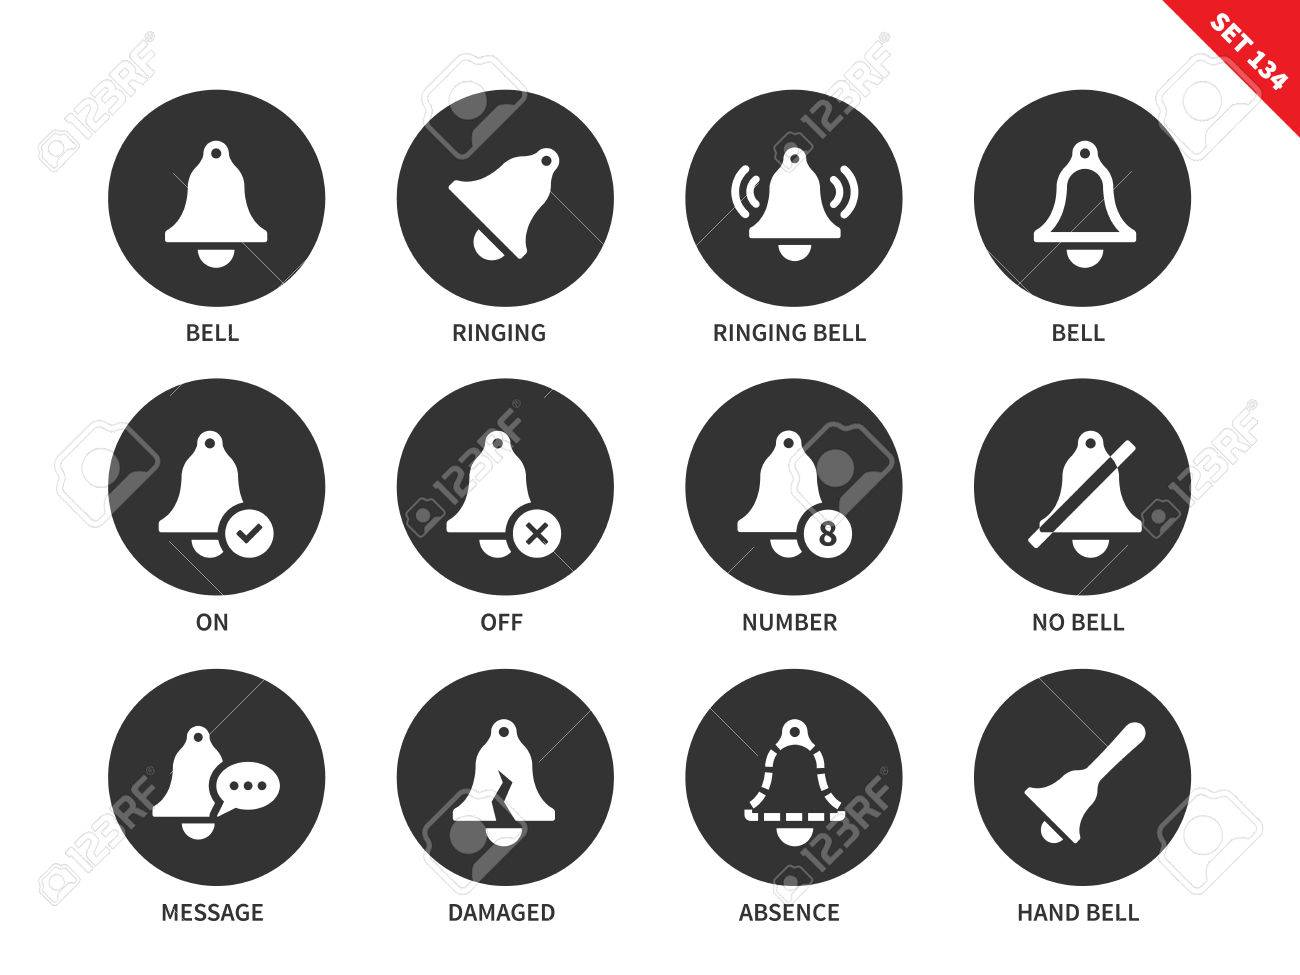 Alarm bells vector icons set  Ringing bell, bells showing on-off